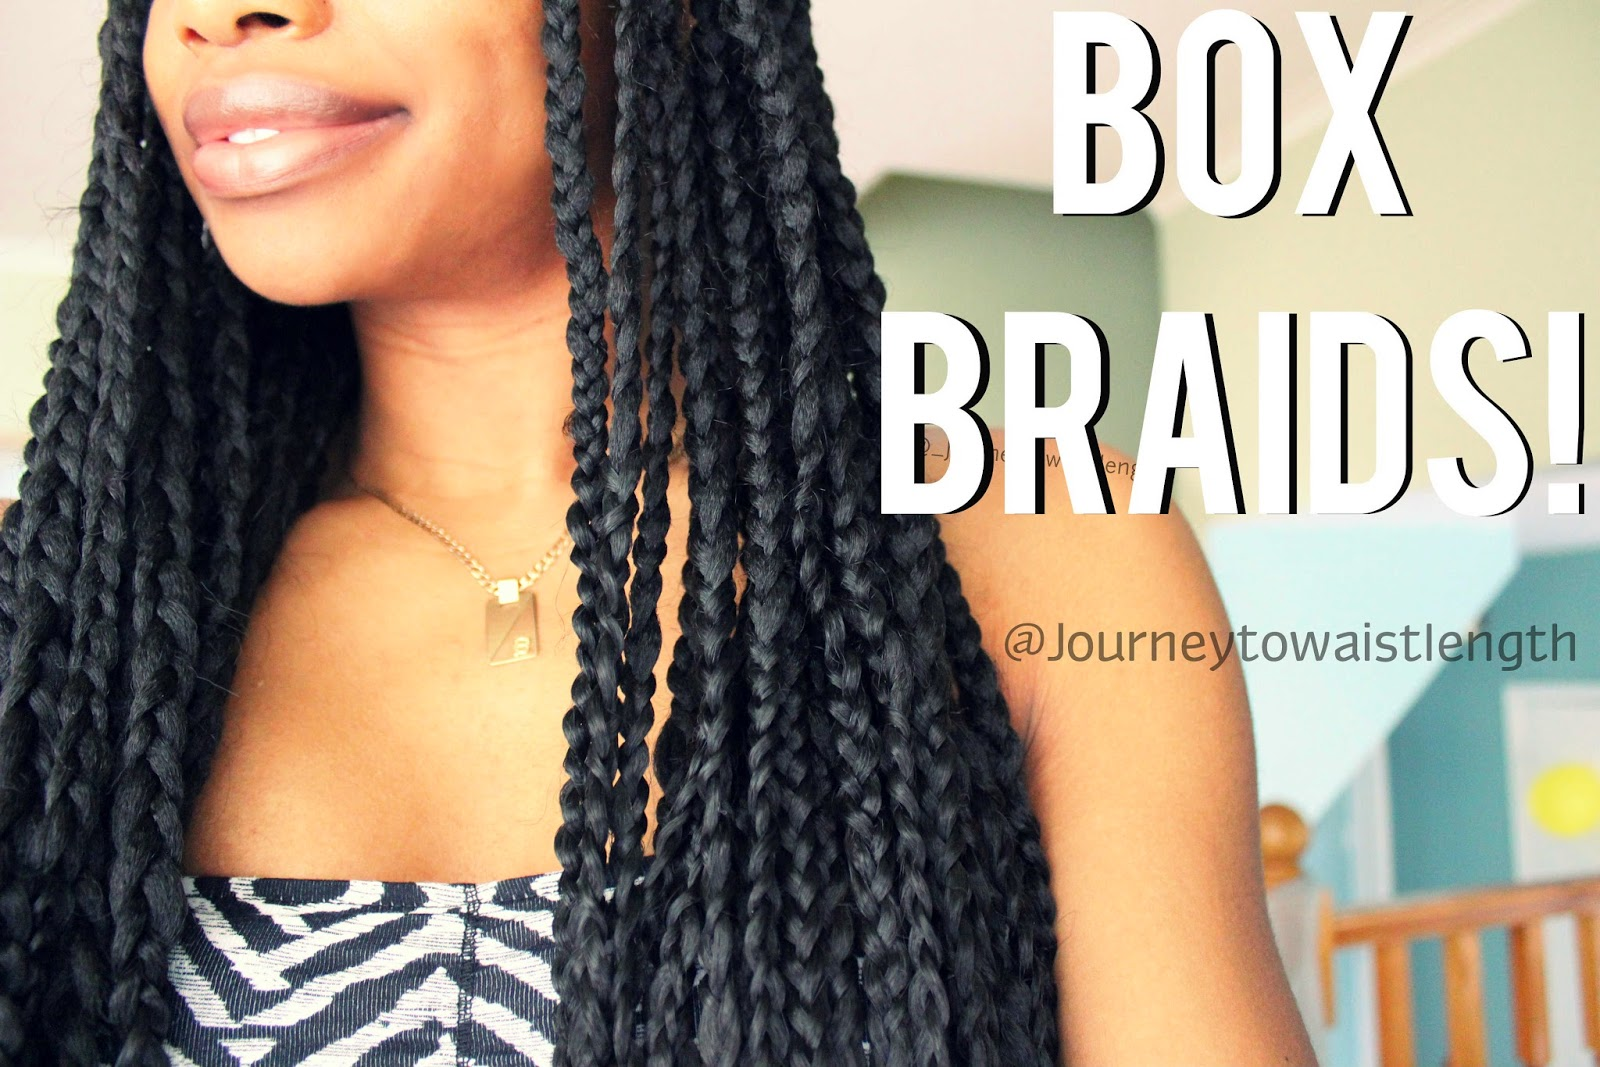 Journey to Waist Length: All About My Box Braids!